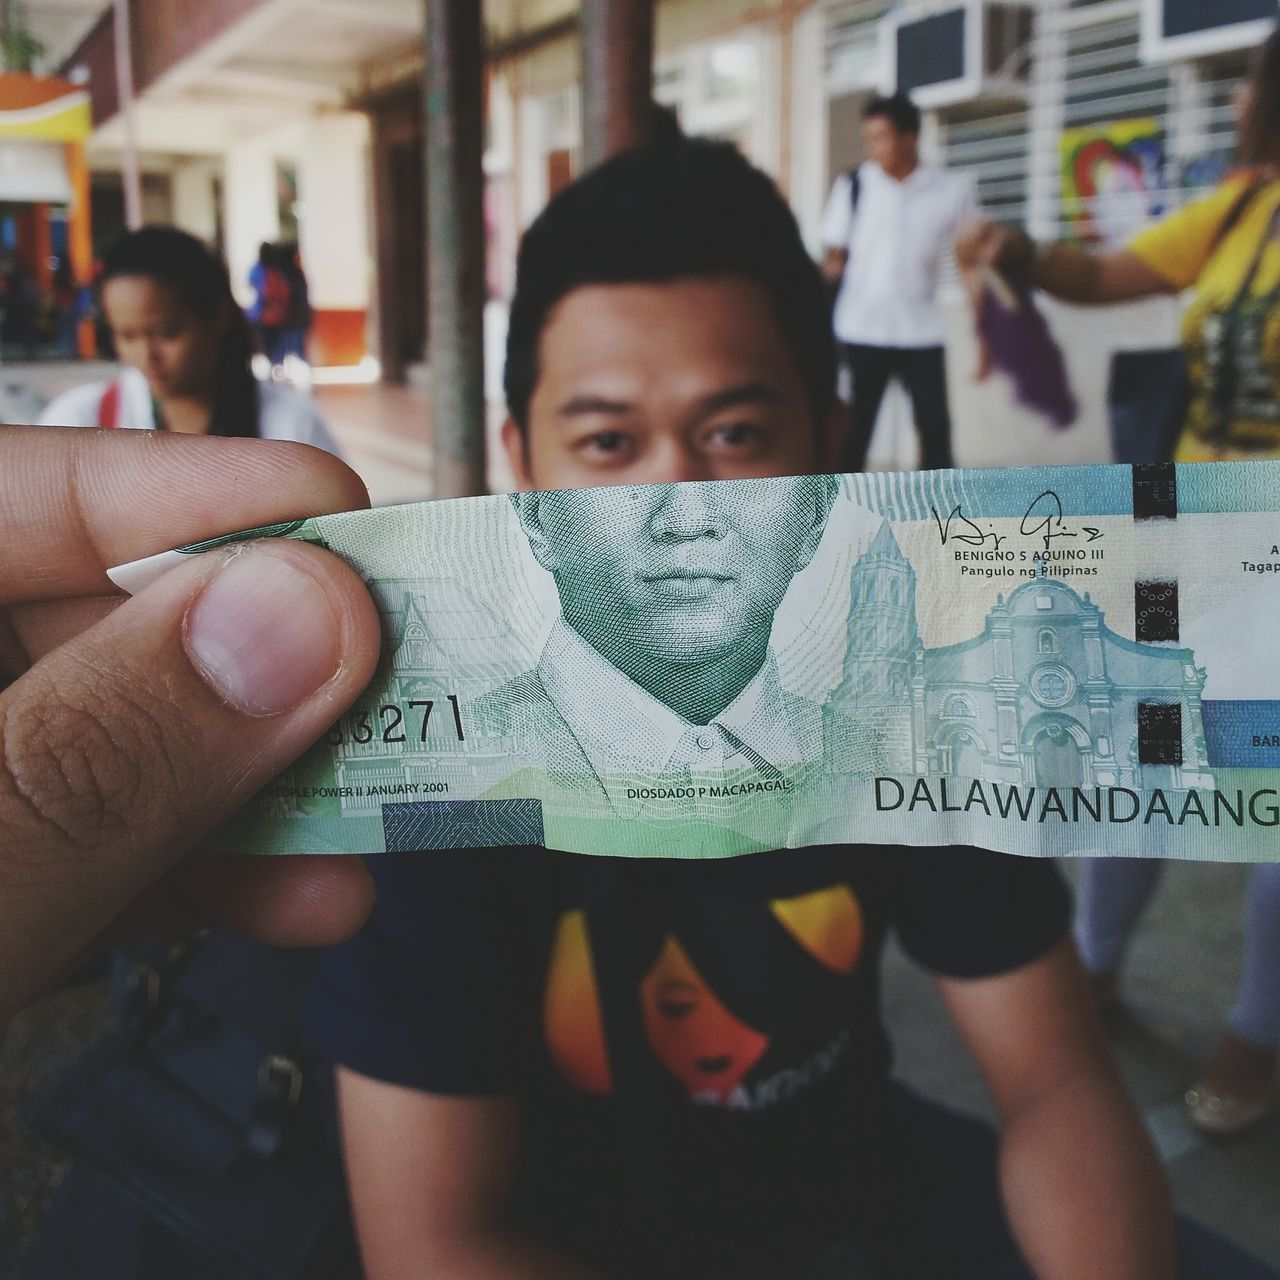 Yes! Got my hands on em P200 bill. Faces EyeEm Fun Eyeemphotography Green EyeEm Gallery Money Moneyface Creative Currency Eyeem Philippines EyeEm Best Shots Philippines Samsung Galaxy Camera Classmate School Pesos Paper View